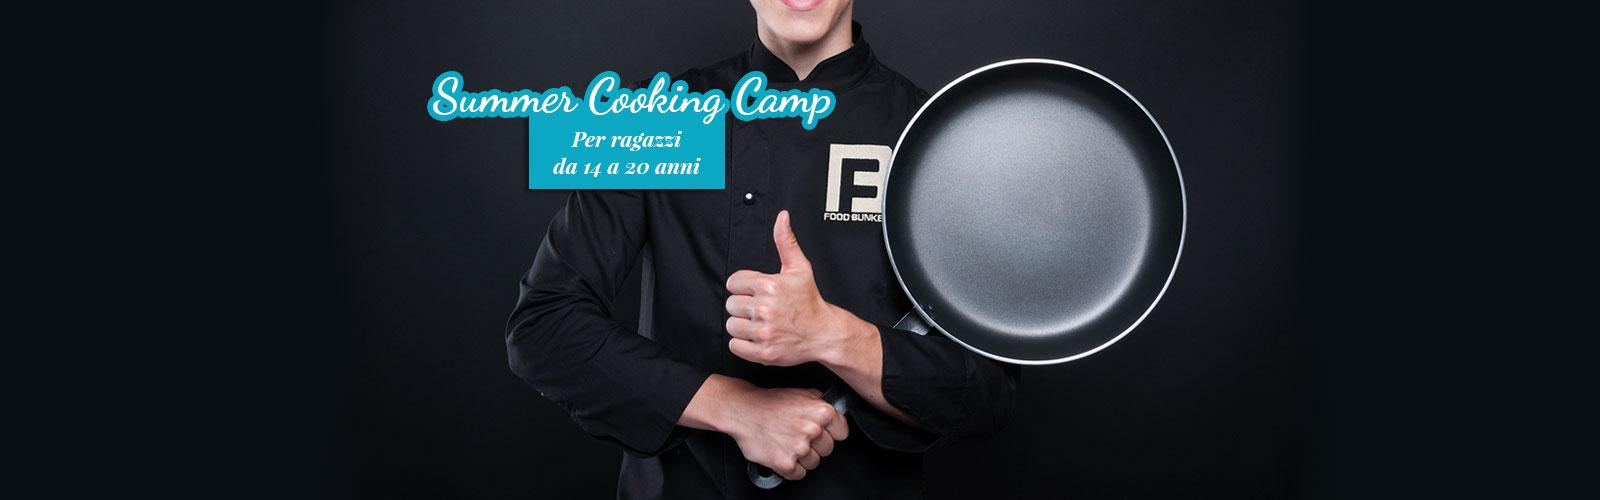 Summer Cooking Camp